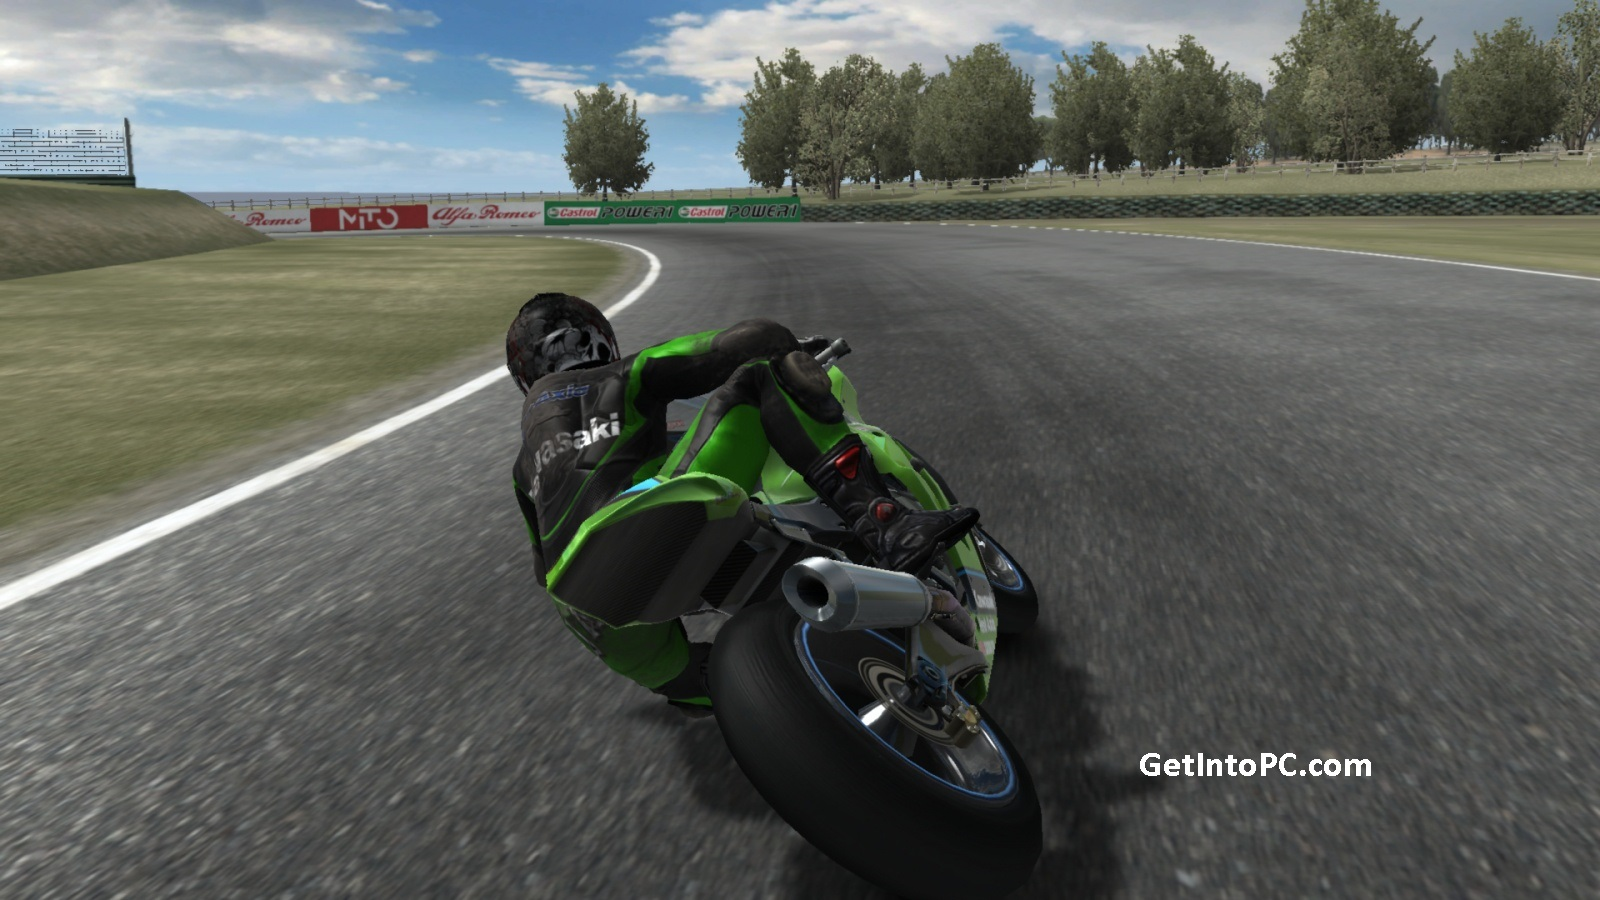 Image gallery motor racing games for Play motor racing games